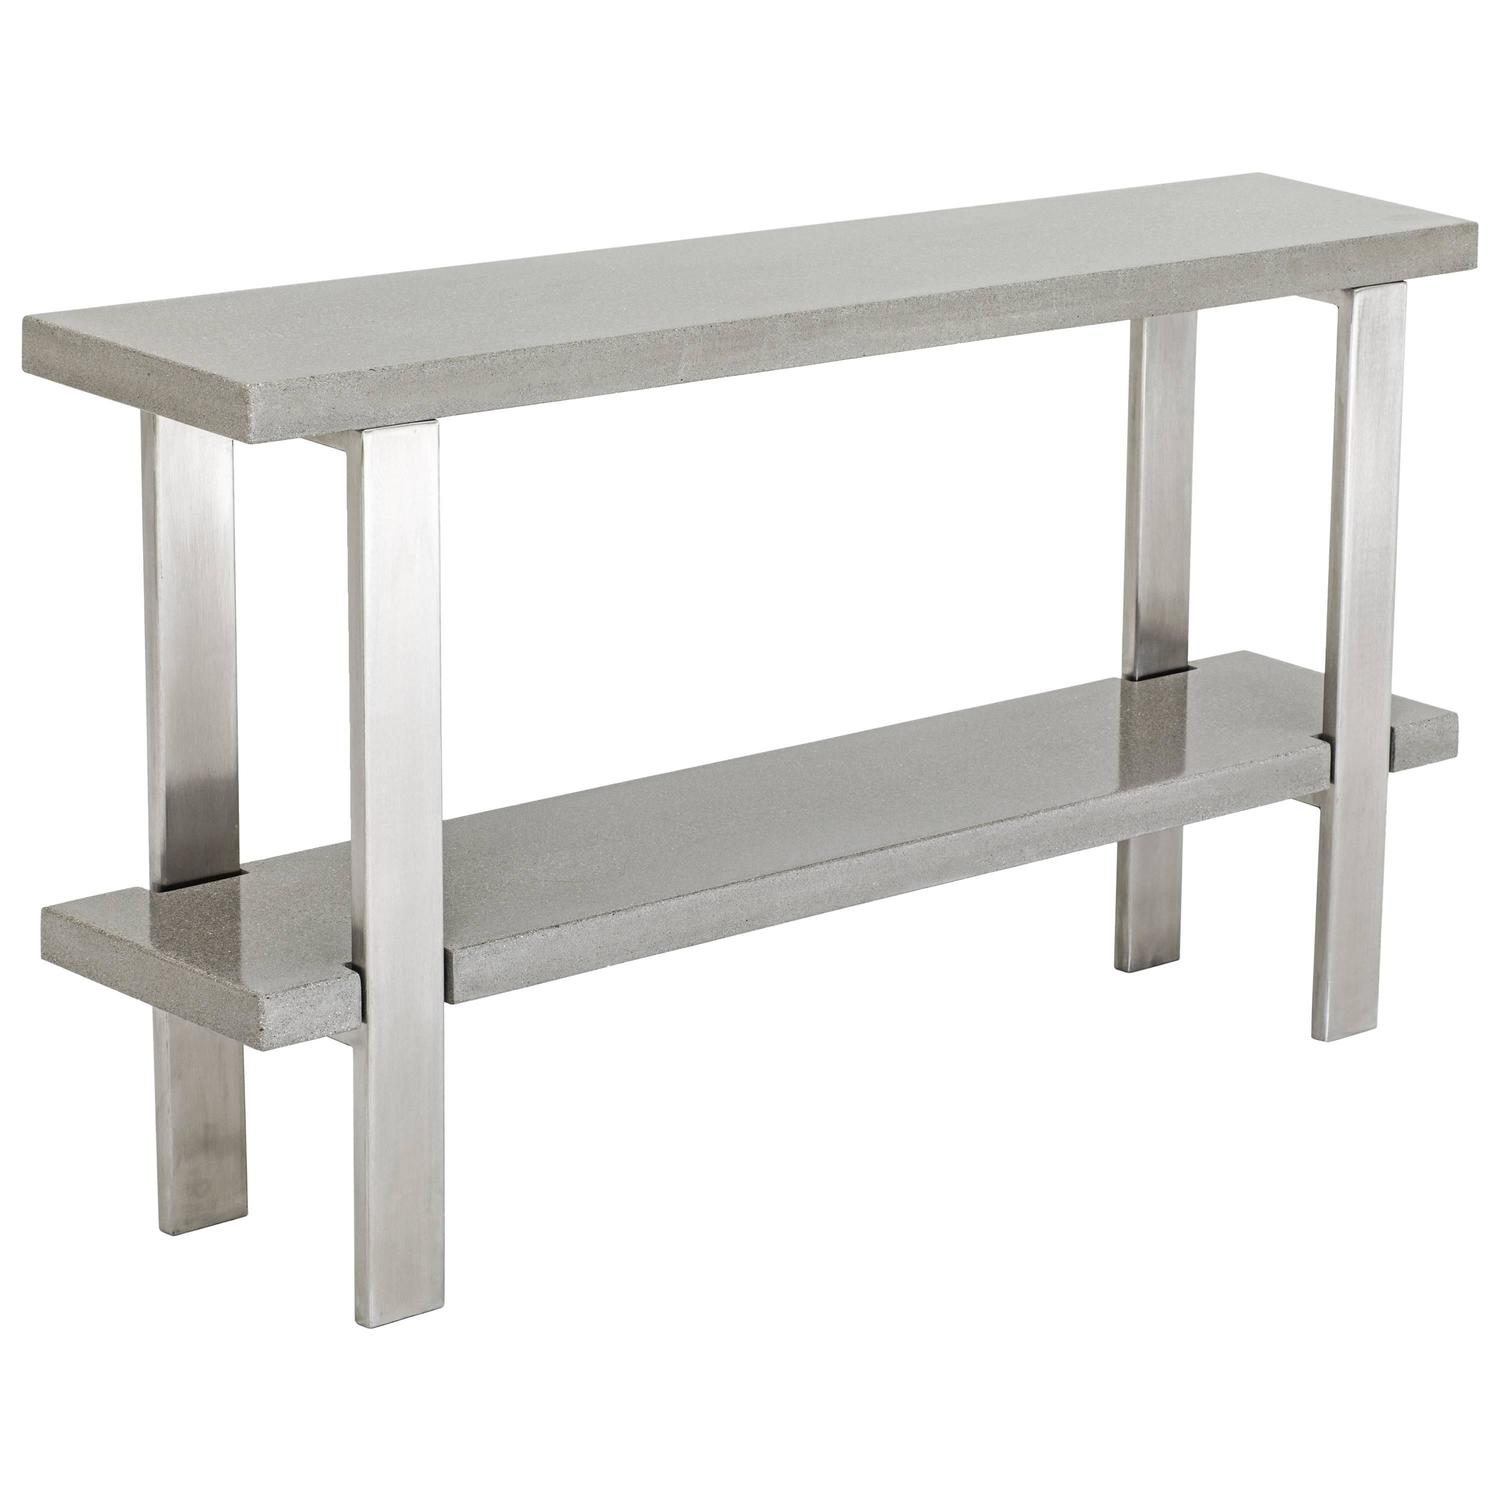 James De Wulf Industrial Console Table, Concrete And Brushed Stainless Steel